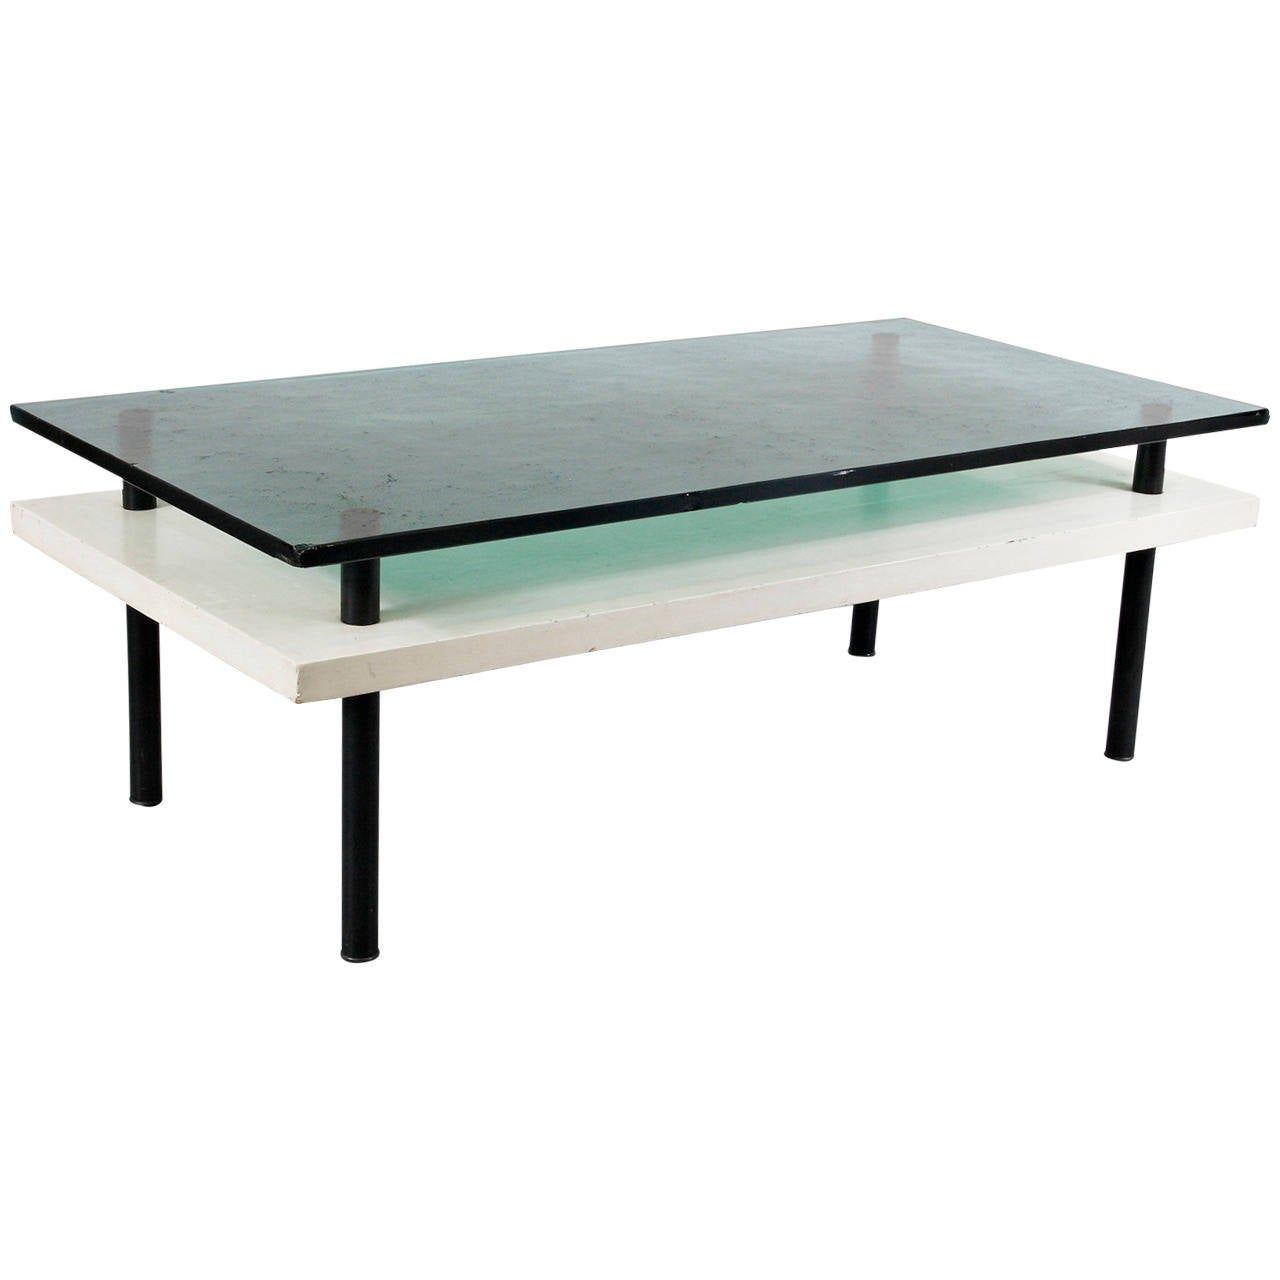 Rare Elmar Berkovich First Edition Coffee Table for Metz & Co, circa 1930 For Sale